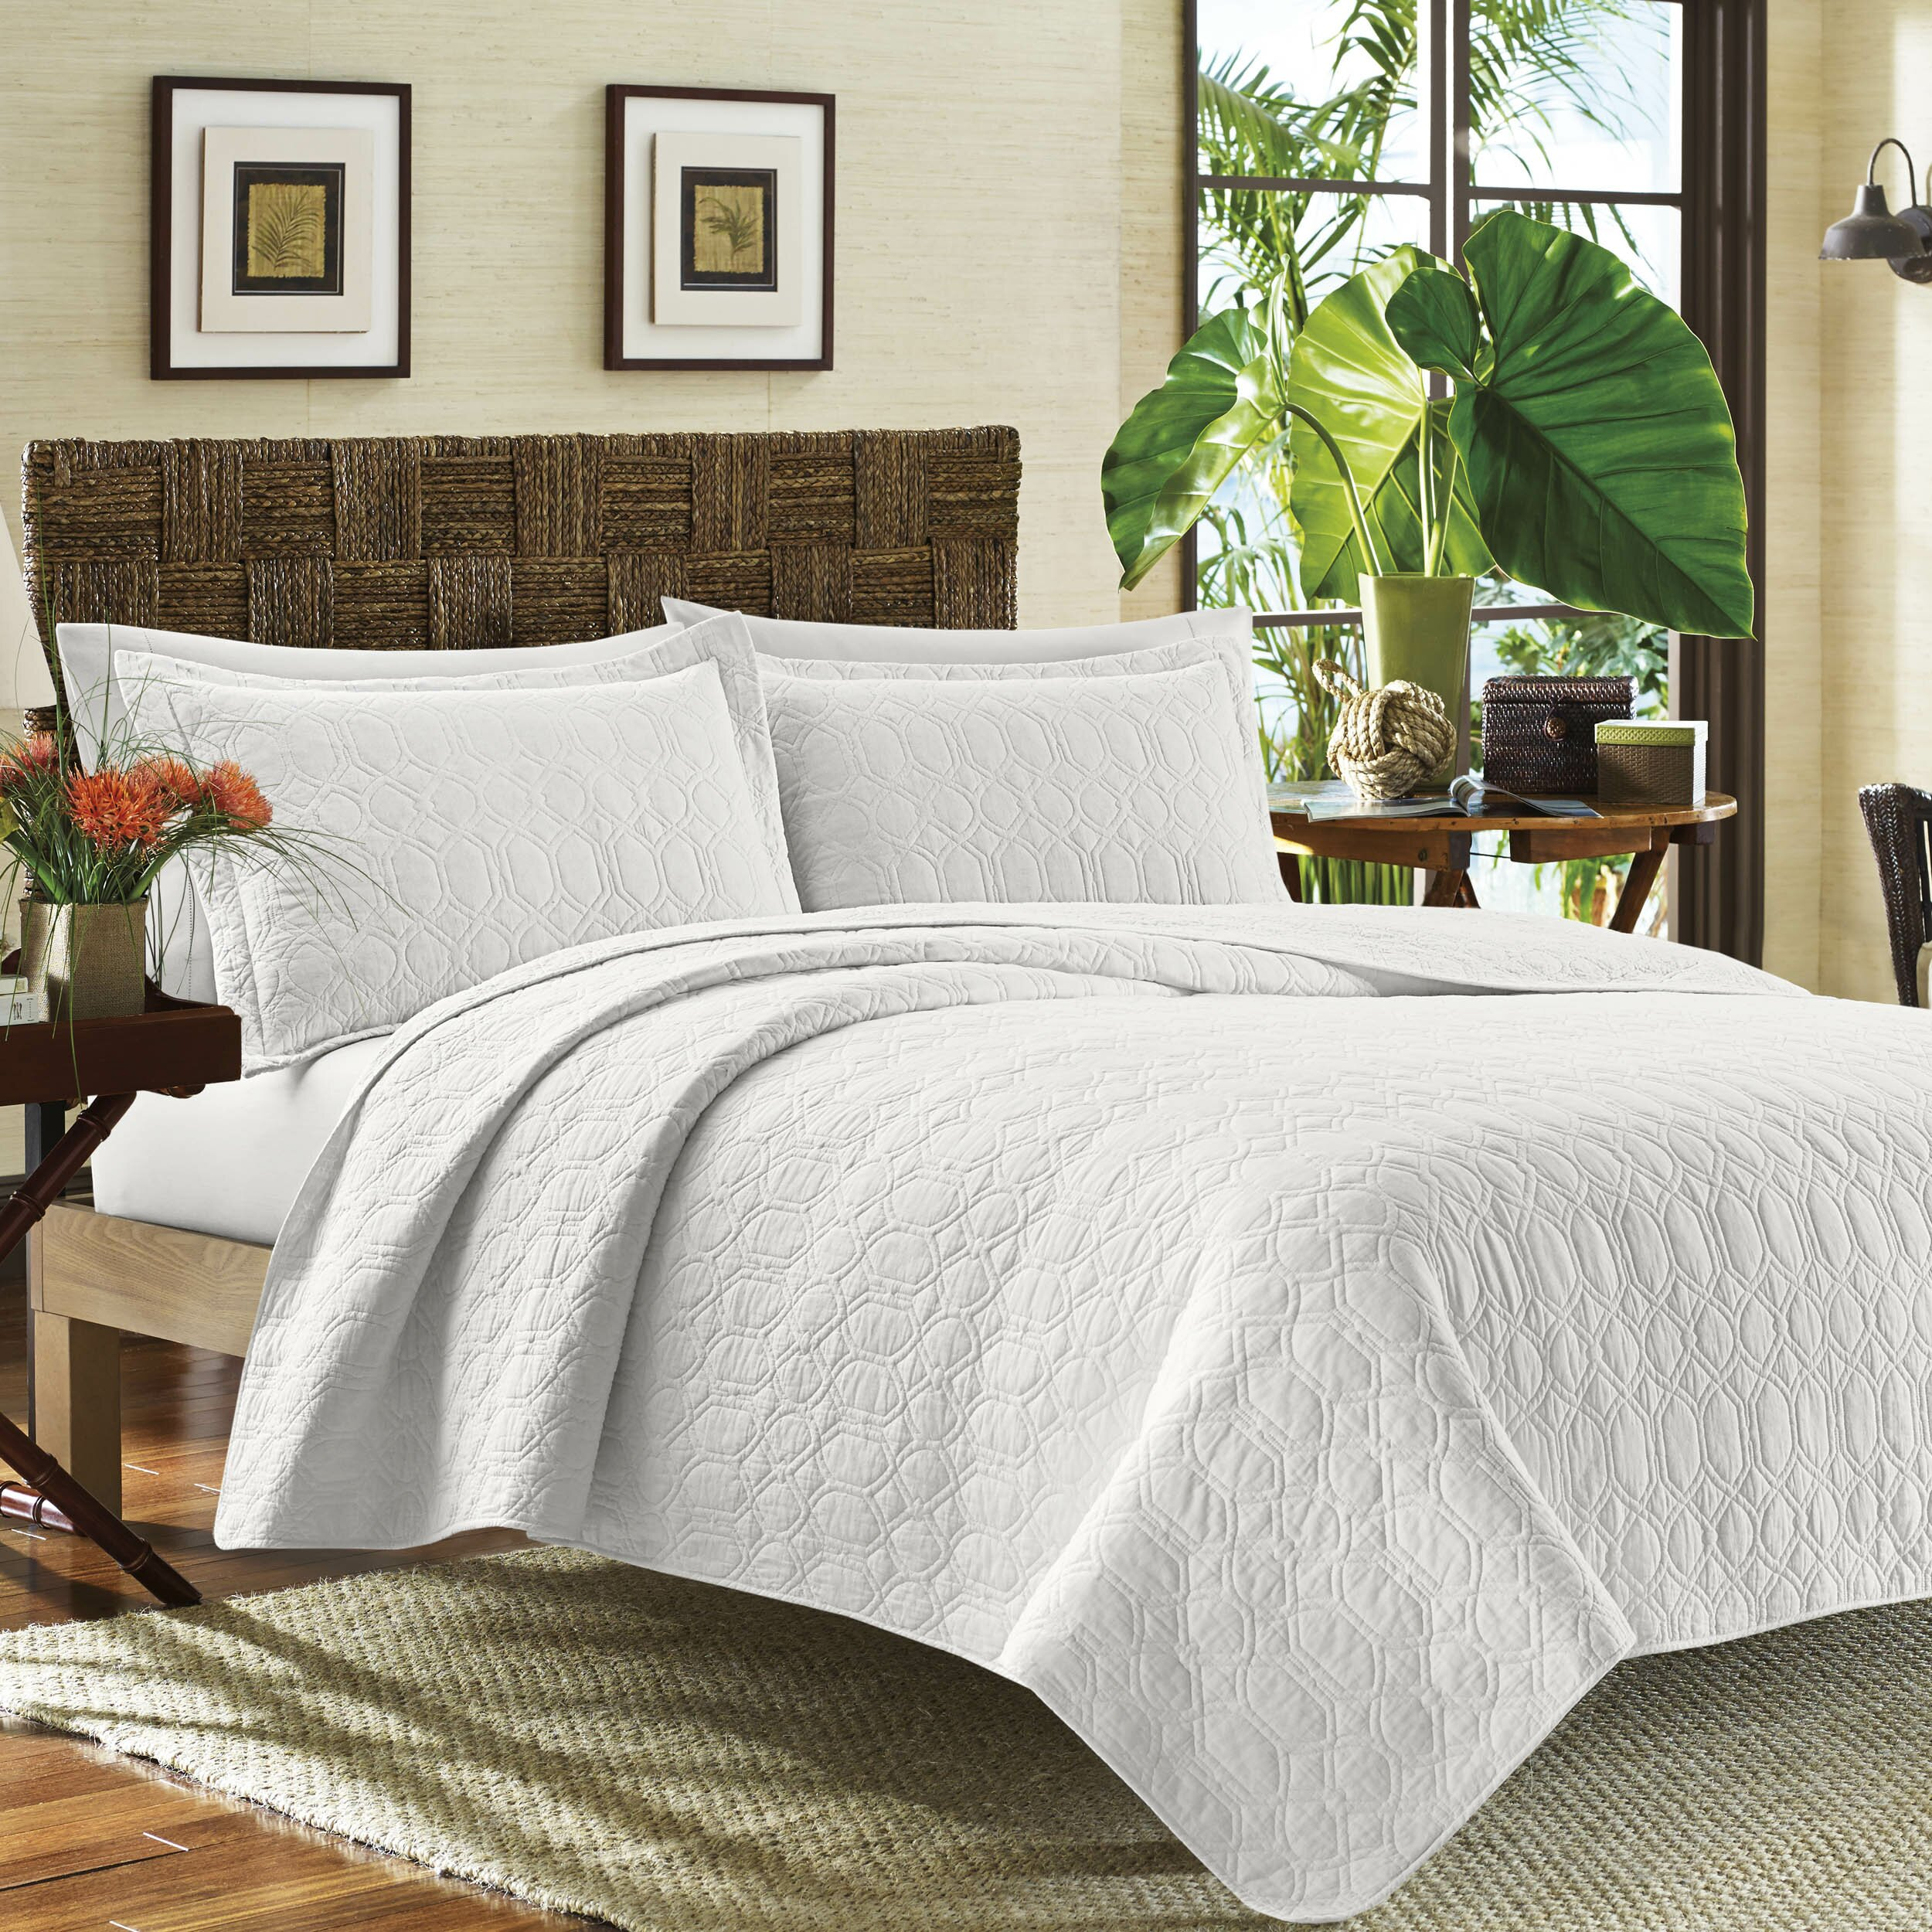 Tommy bahama bedding catalina quilt set wayfair Tommy bahama bedding